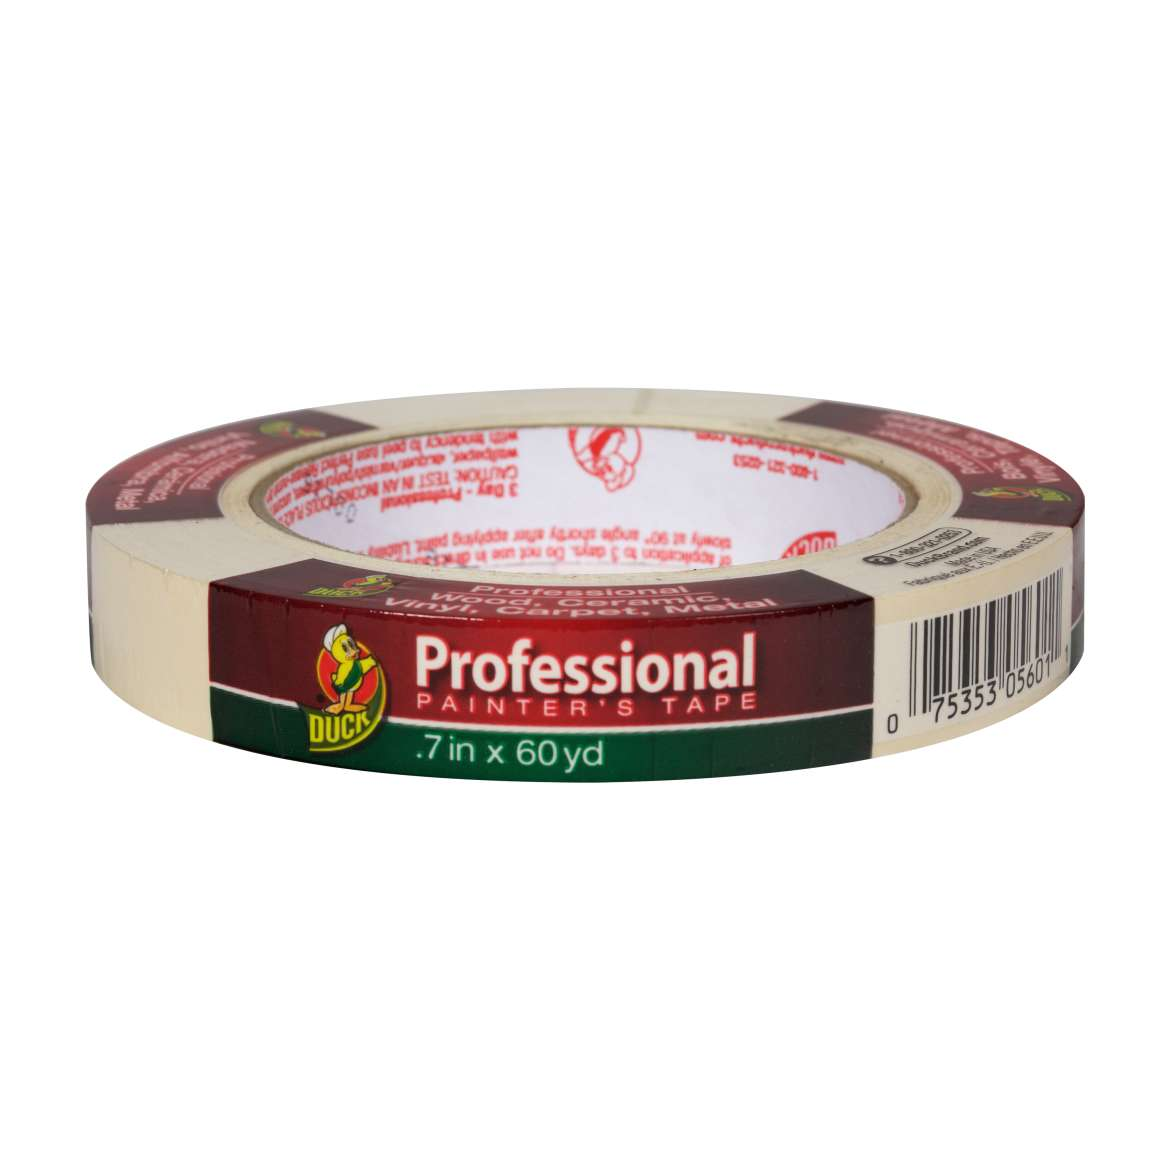 Duck® Brand Professional Painter's Tape - Beige, .7 in. x 60 yd. Image